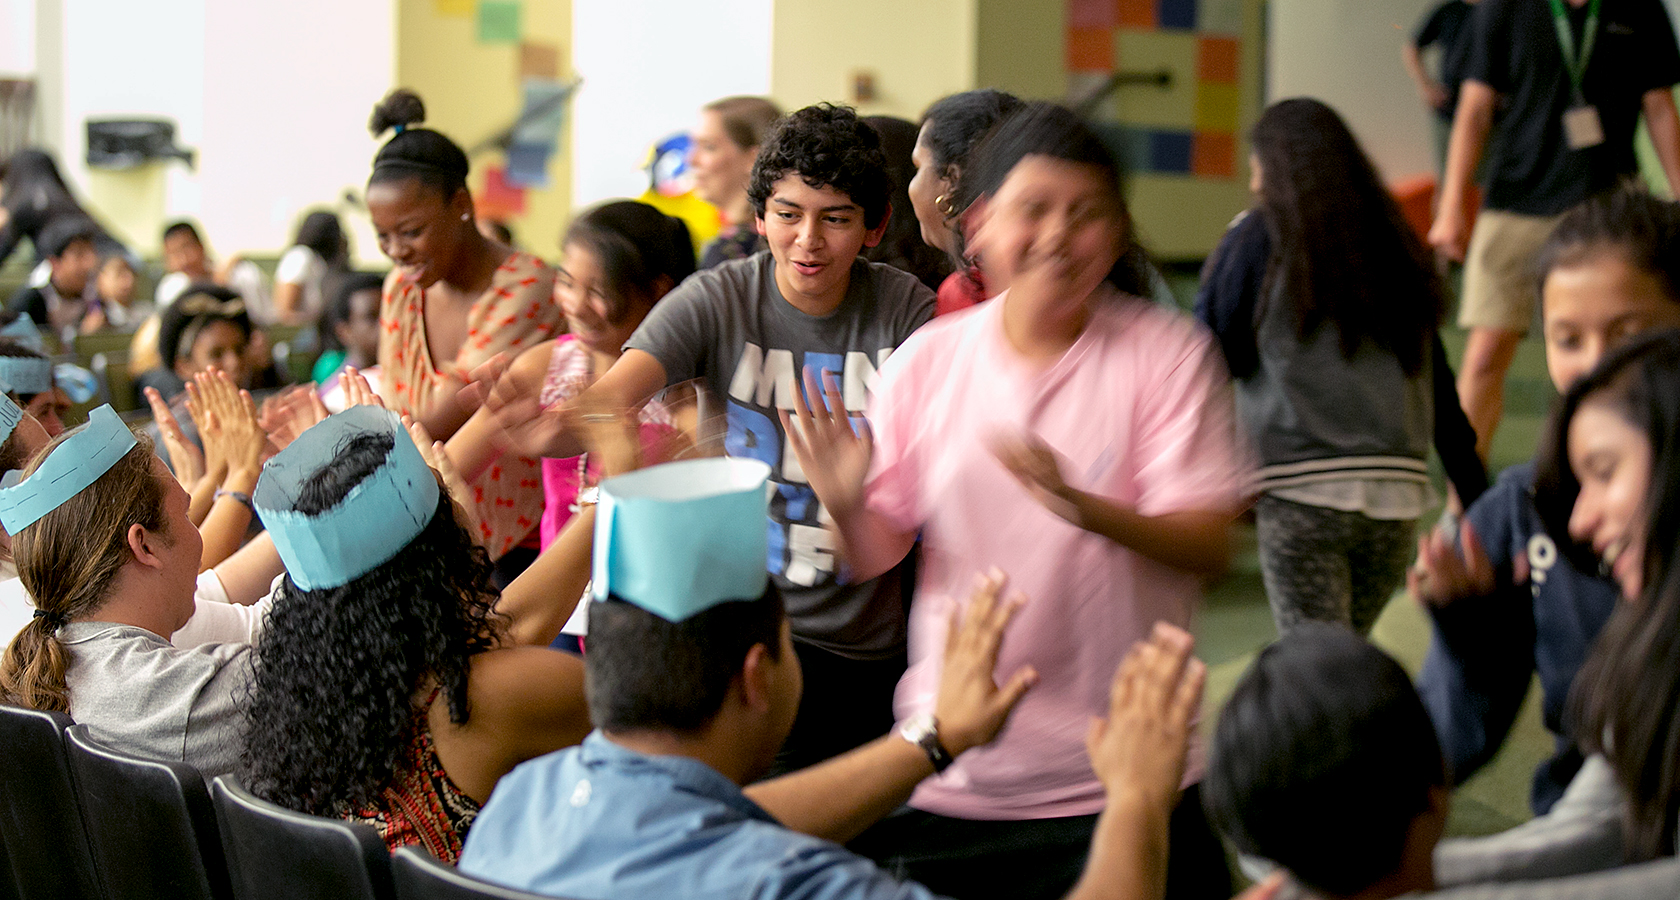 Breakthrough Austin students start their day by giving each other high fives.